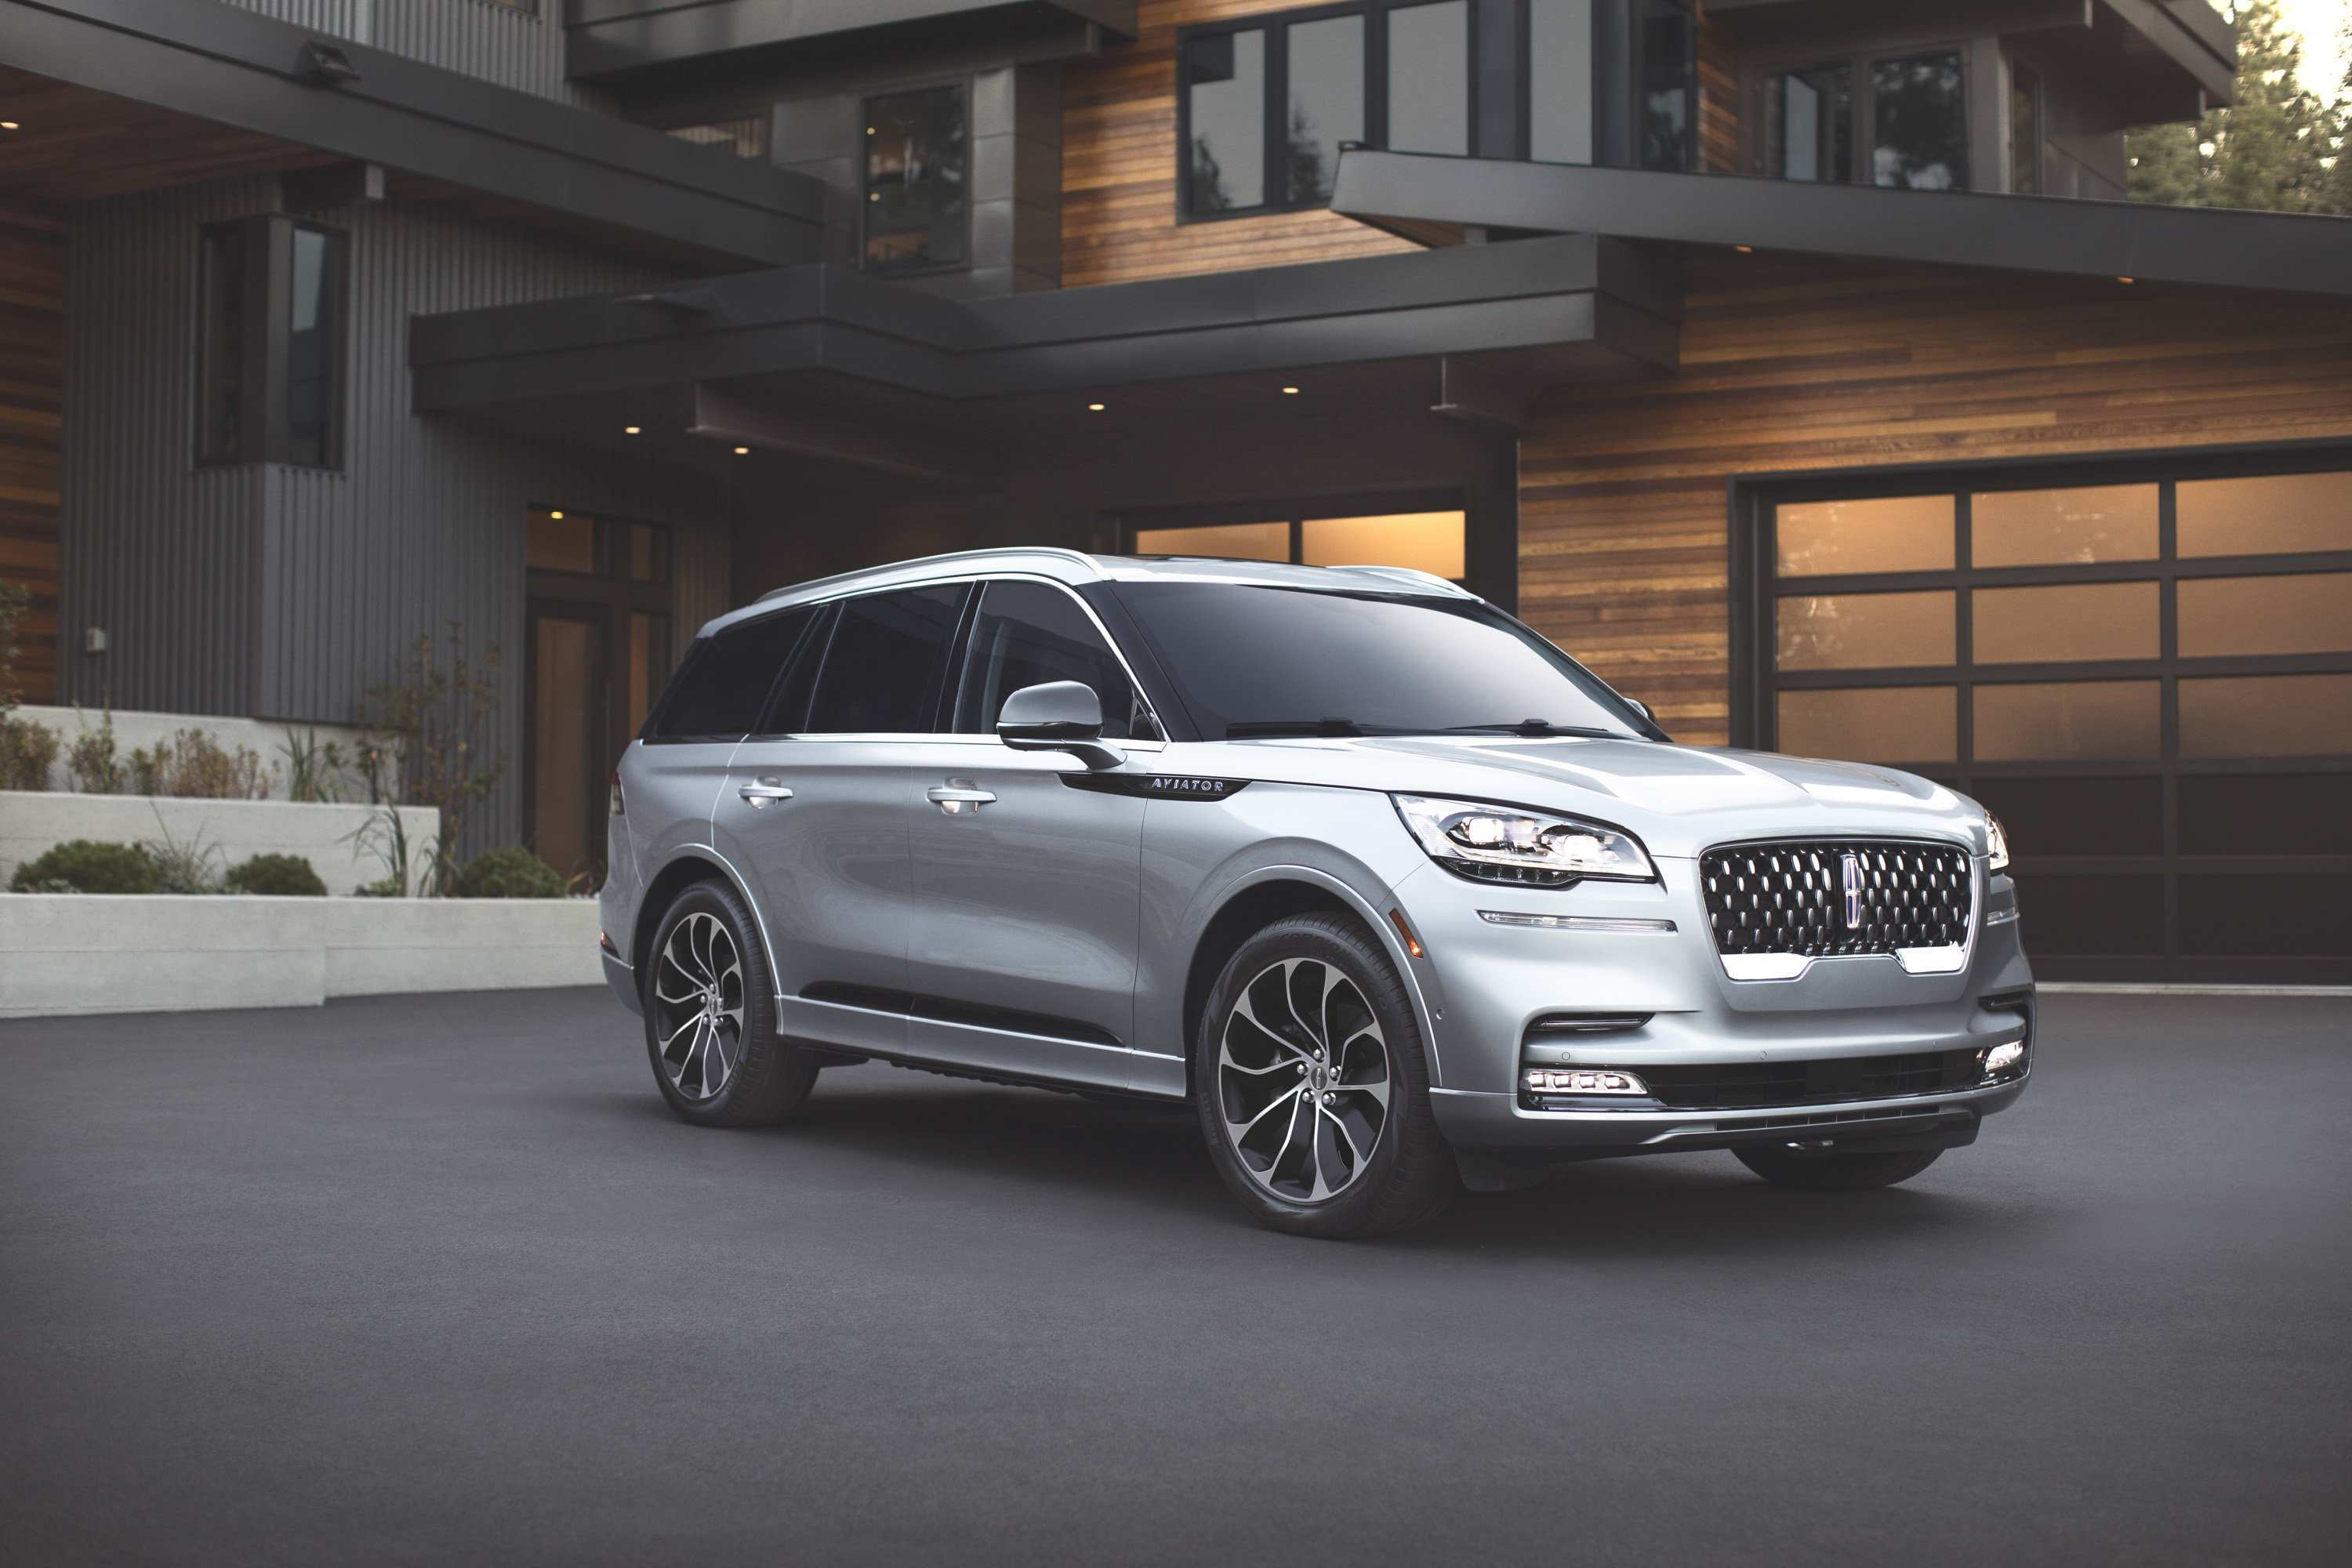 42 All New 2020 Lincoln MKX Specs and Review for 2020 Lincoln MKX